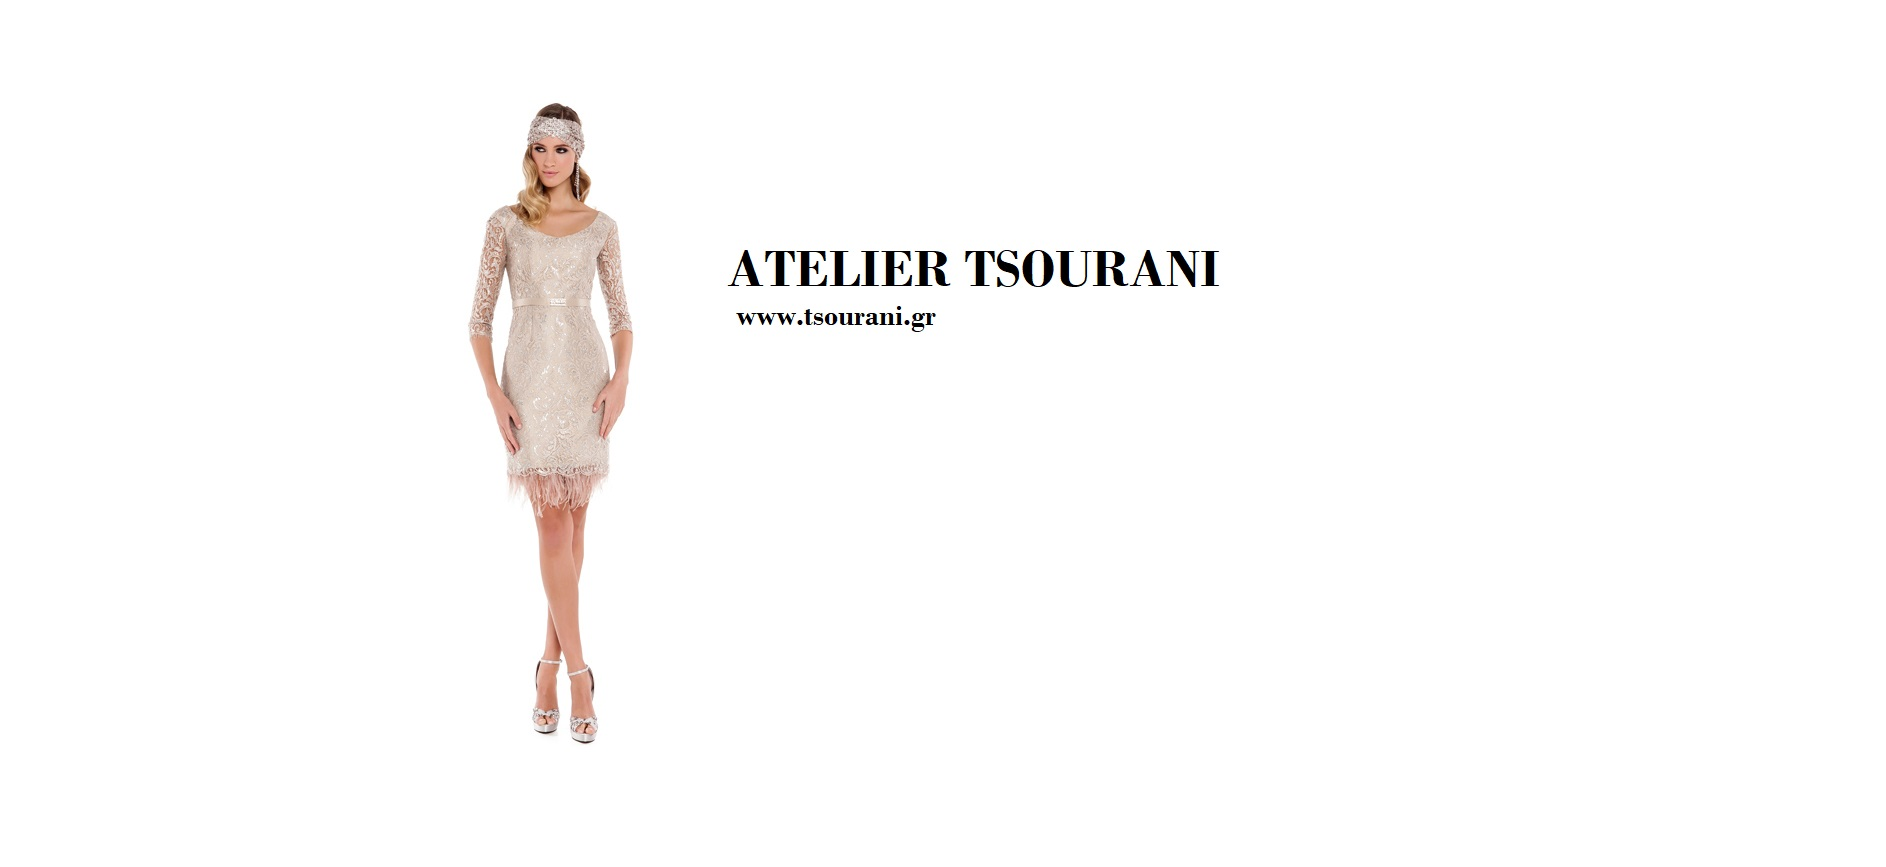 81cfdf26f3a0 Atelier Tsourani » ΚΟΜΨΑ ΑΠΟΓΕΥΜΑΤΙΝΑ ΦΟΡΕΜΑΤΑ HAUTE COUTURE